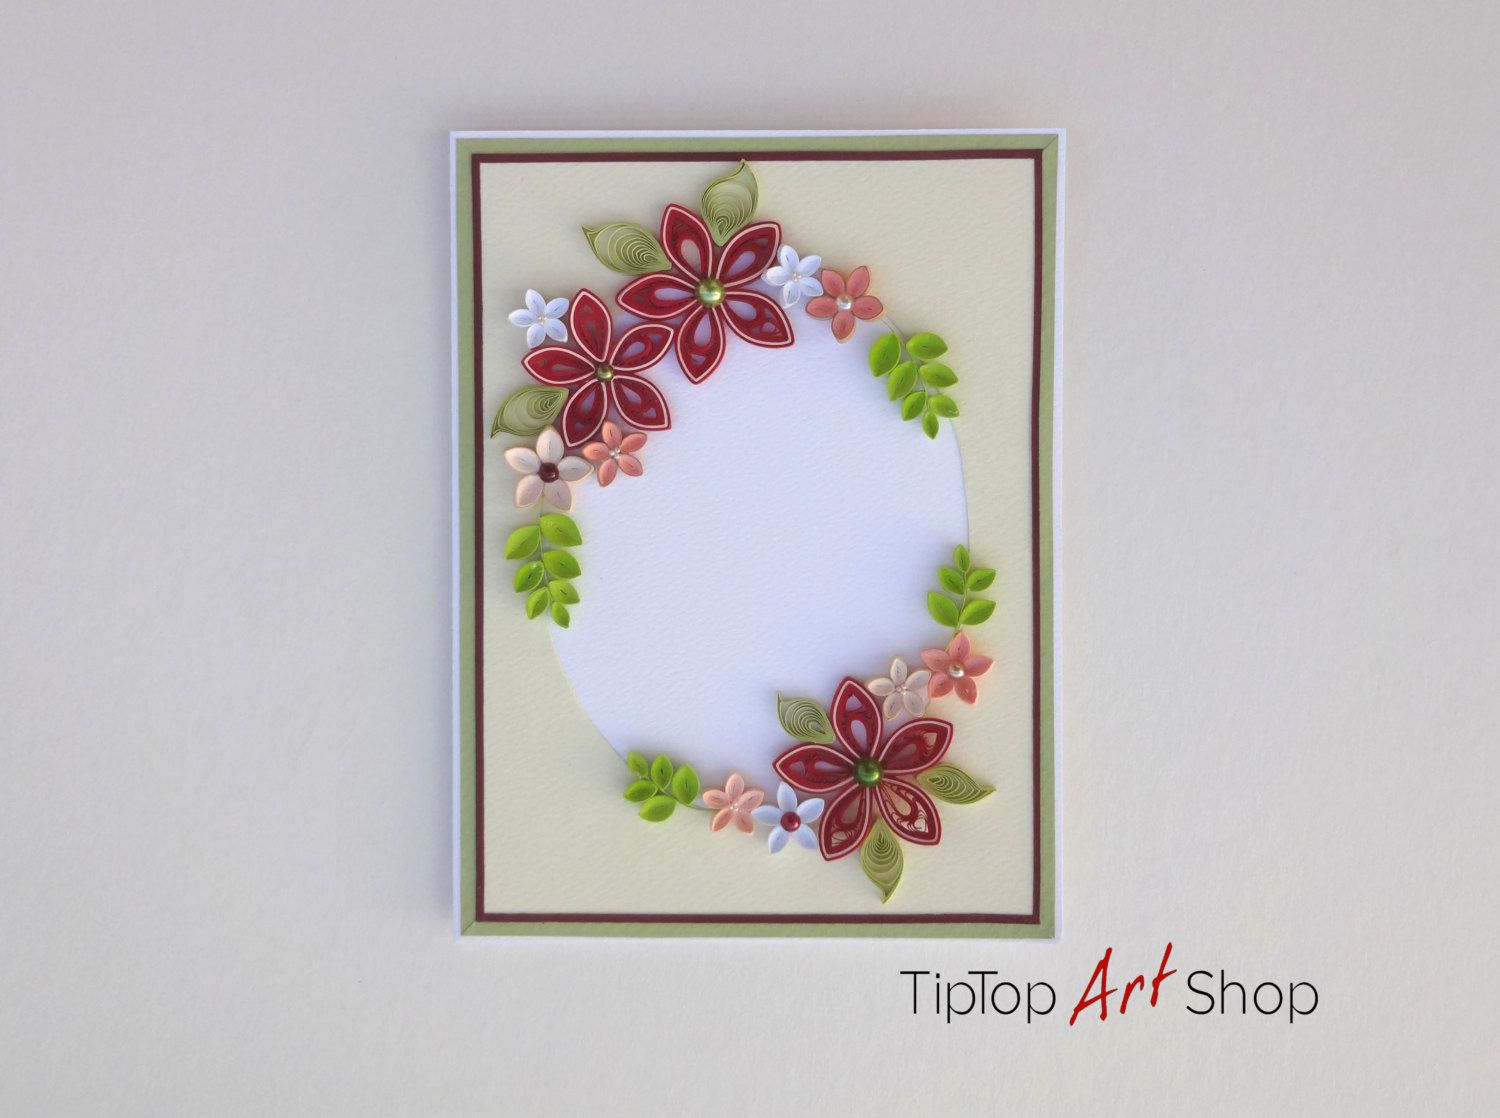 Quilled homemade greeting card with 3d paper flowers personalized quilled homemade greeting card with 3d paper flowers by tiptopartshop on etsy m4hsunfo